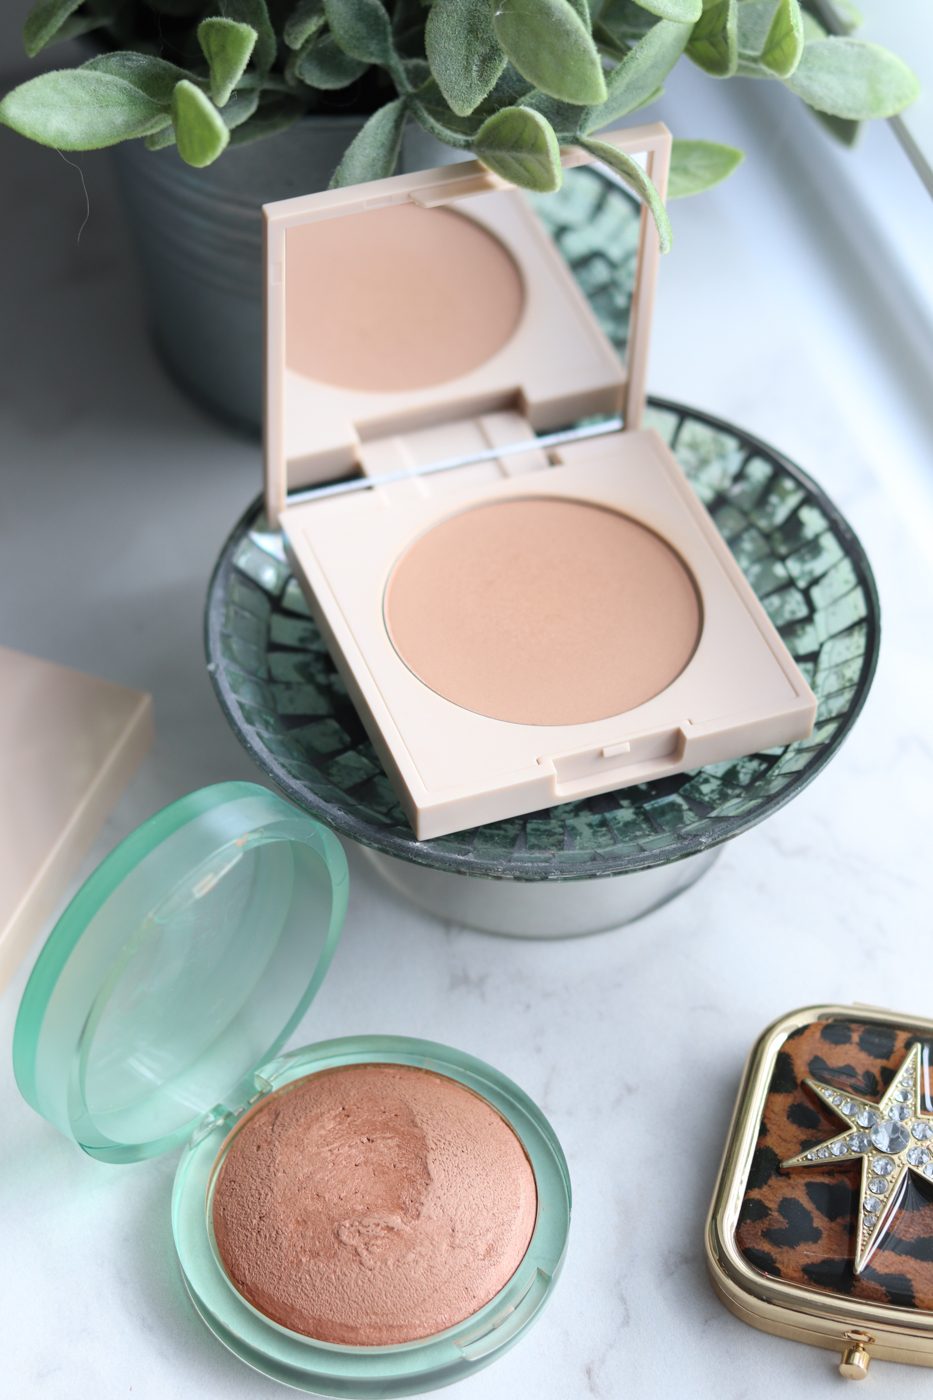 KOSAS The Sun Show Bronzer Medium | ILIA Nightlite Bronzer Drawn In